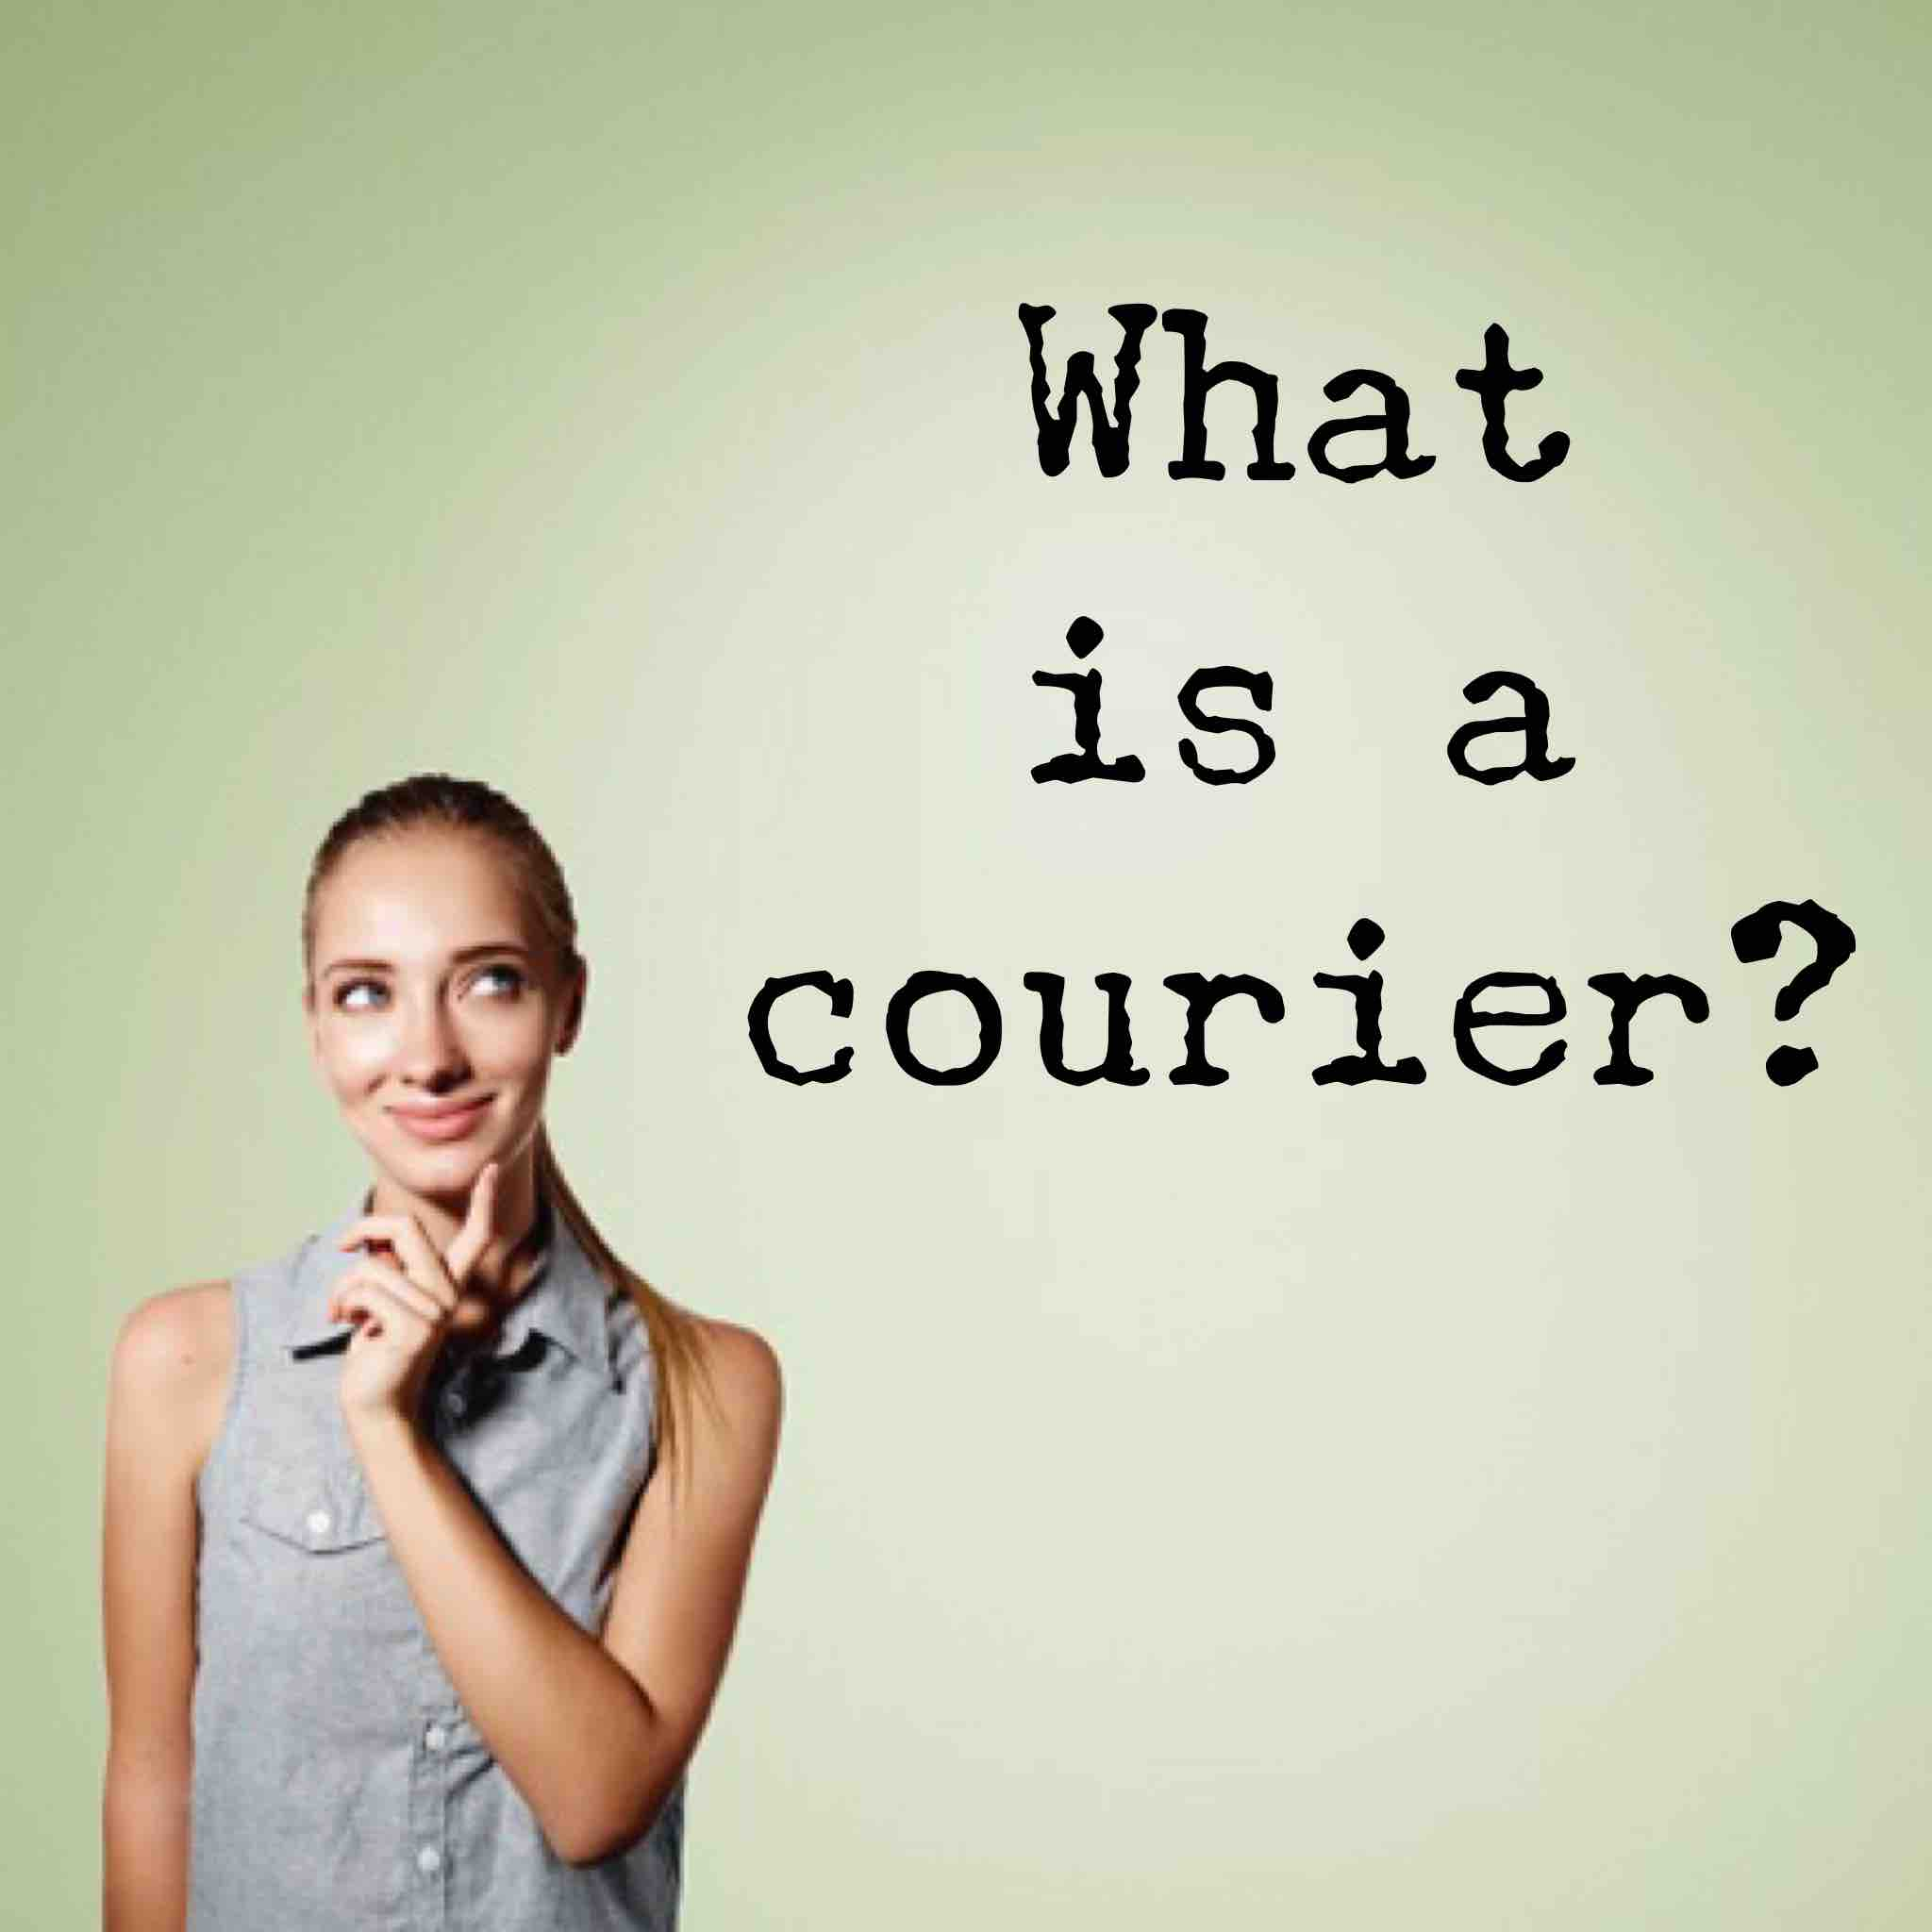 A woman thinking about the question 'What is a courier?'